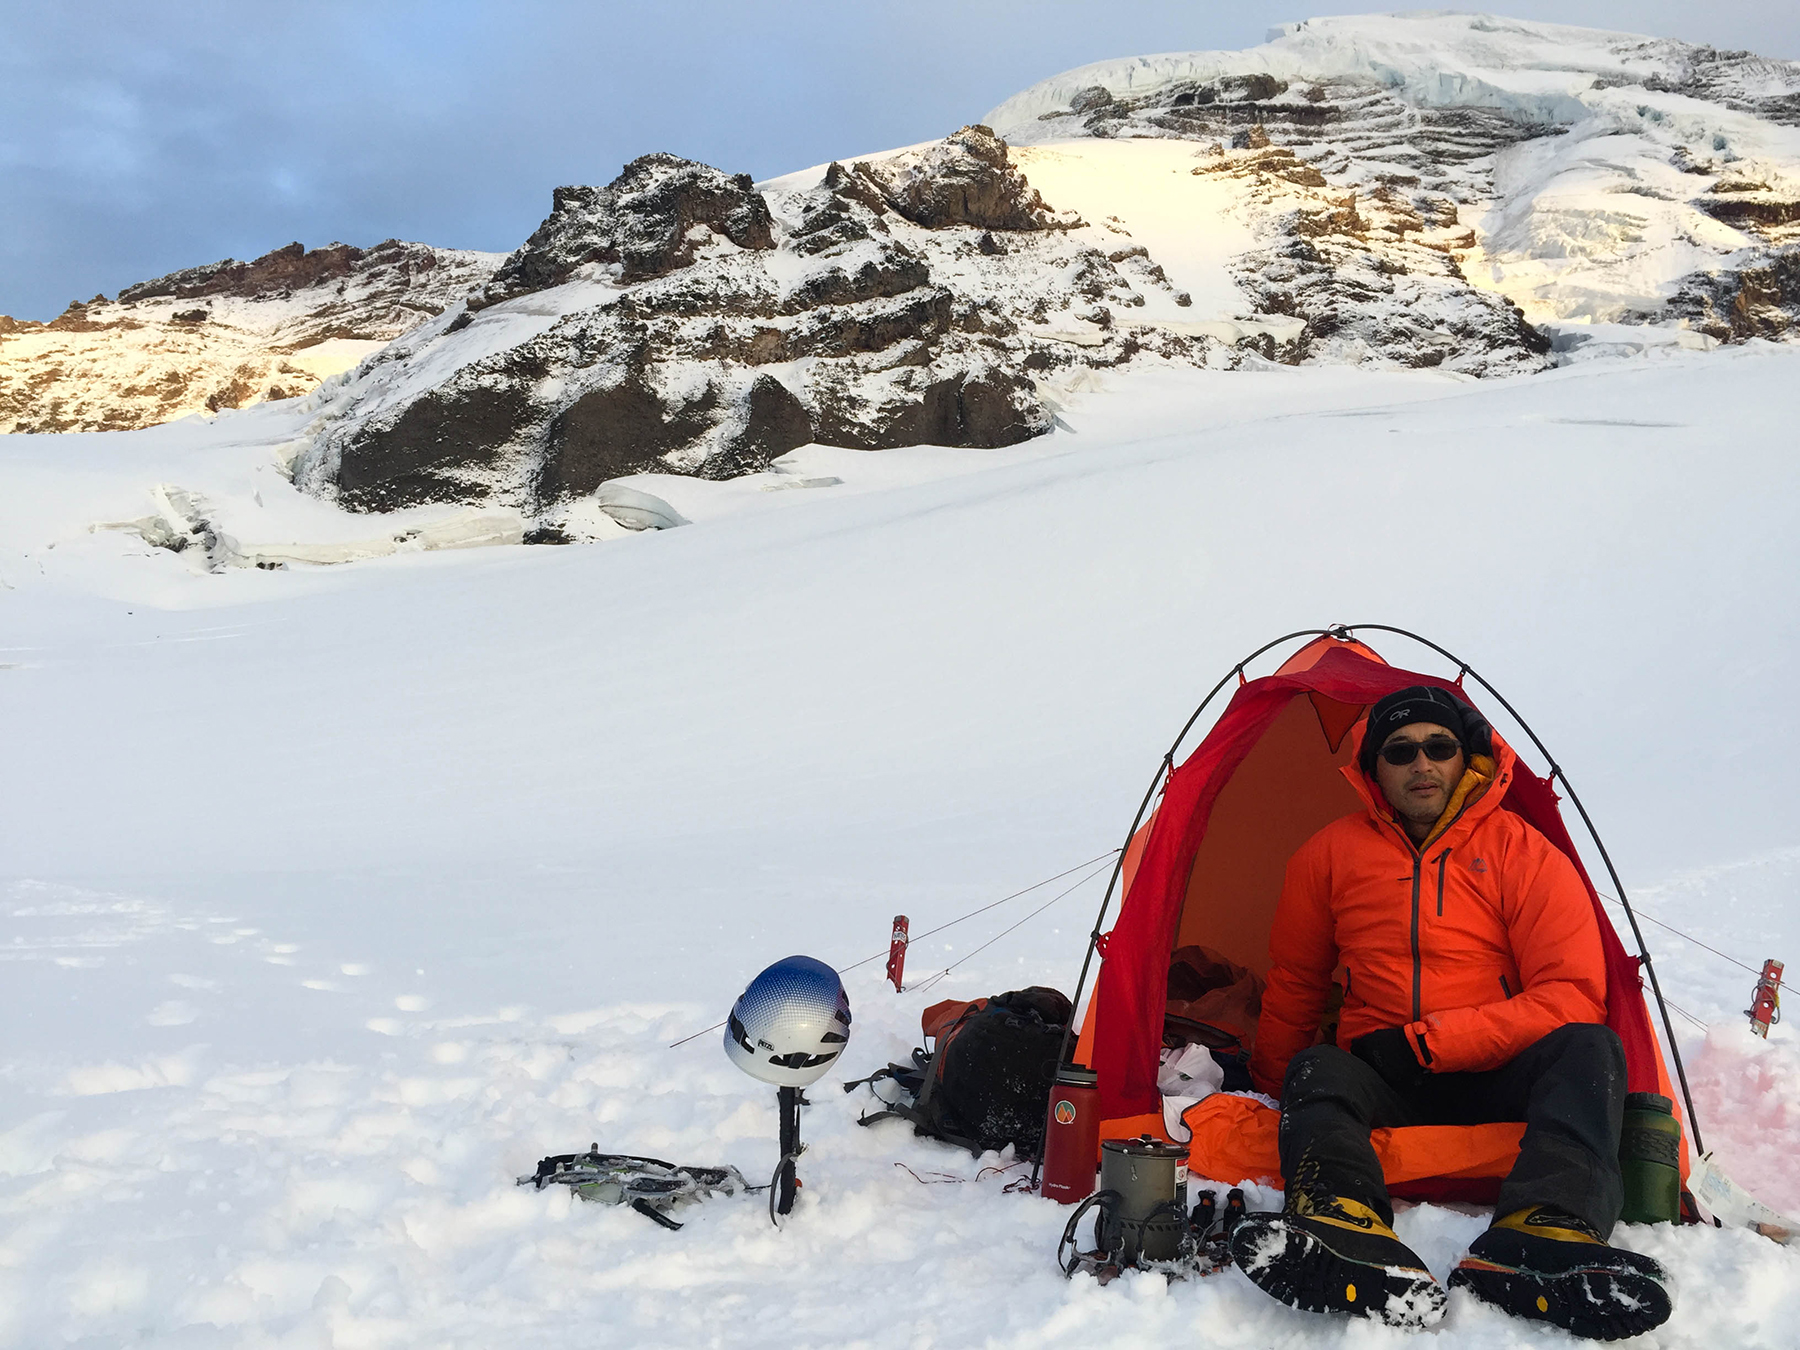 msr advance pro 2 tent on mount baker  sc 1 st  GearJunkie & Pitch on a Ledge: MSR Advance Pro 4-Season Tent Review